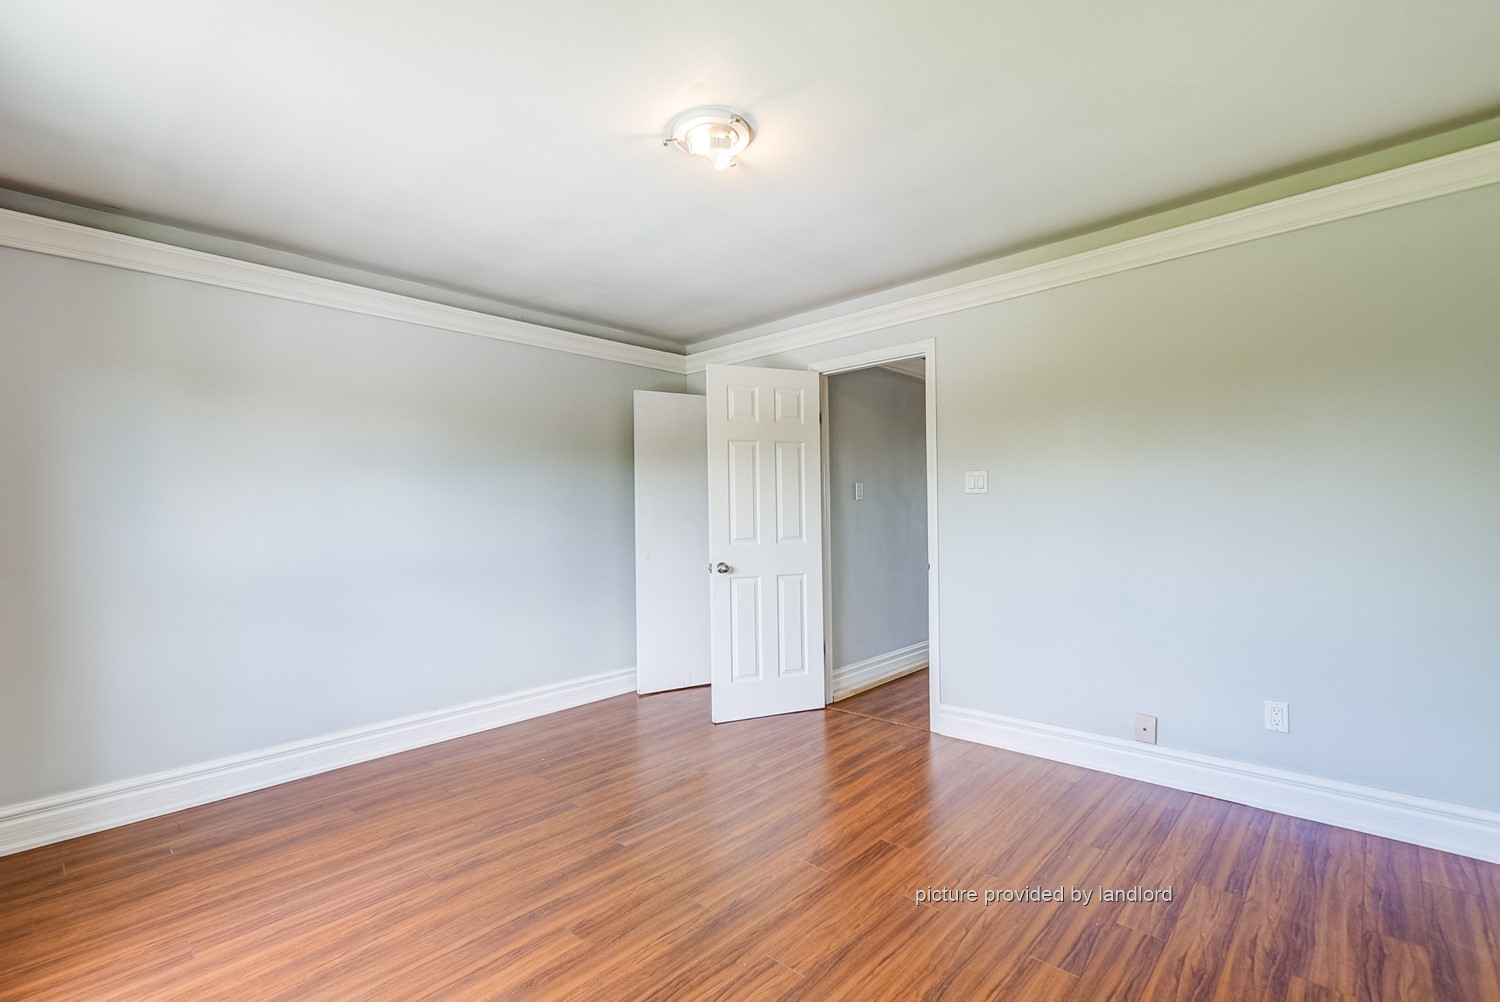 For rent: Derry Road E-Airport Mississauga, 1 bdrm Viewit ...